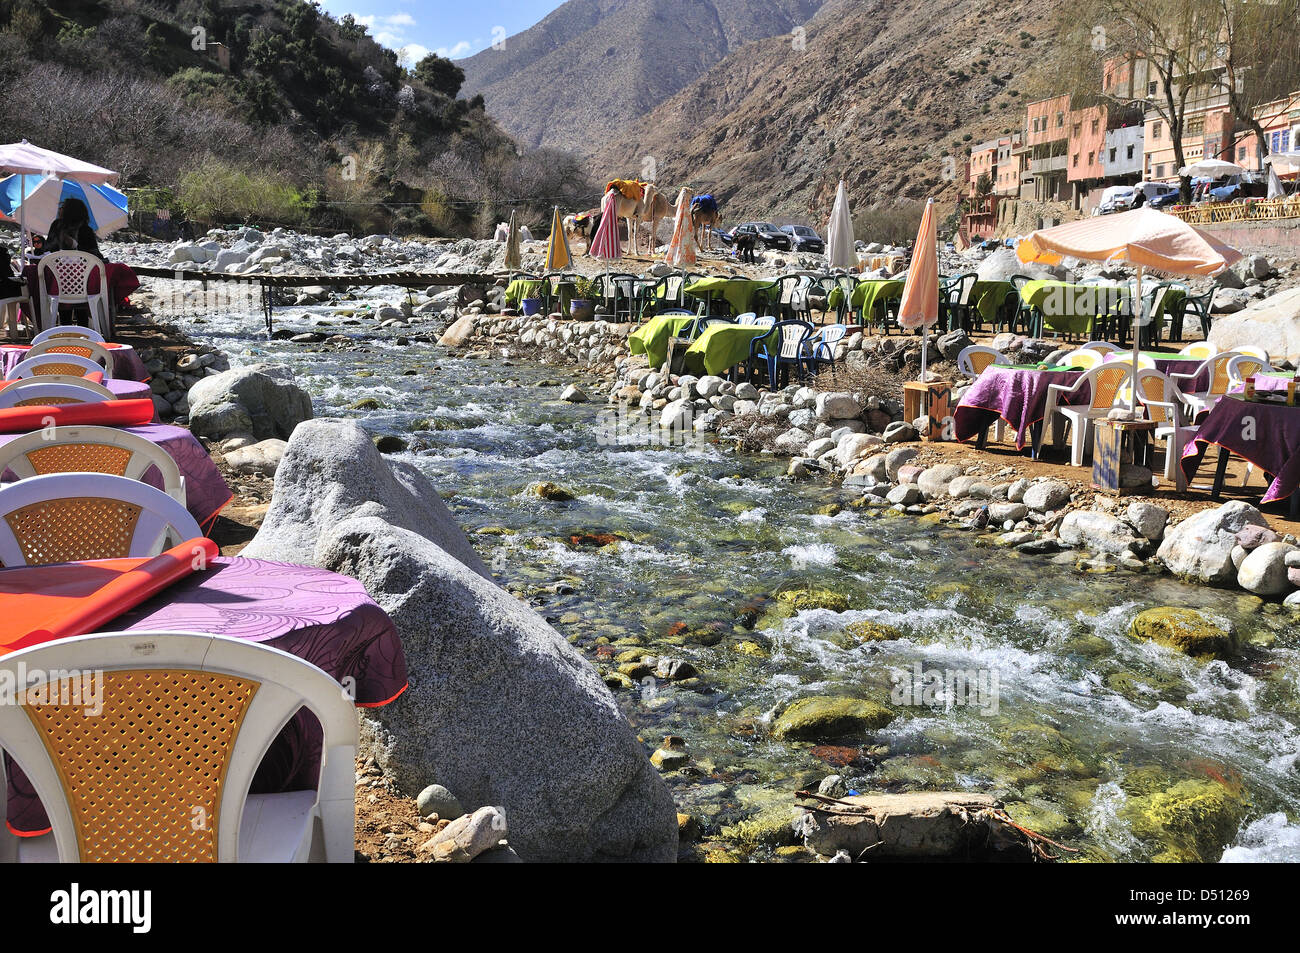 Riverside cafes and restaurants line the riverside in the popular village of Setti Fatma near the Cascades, Ourika Valley ,Morocco Stock Photo